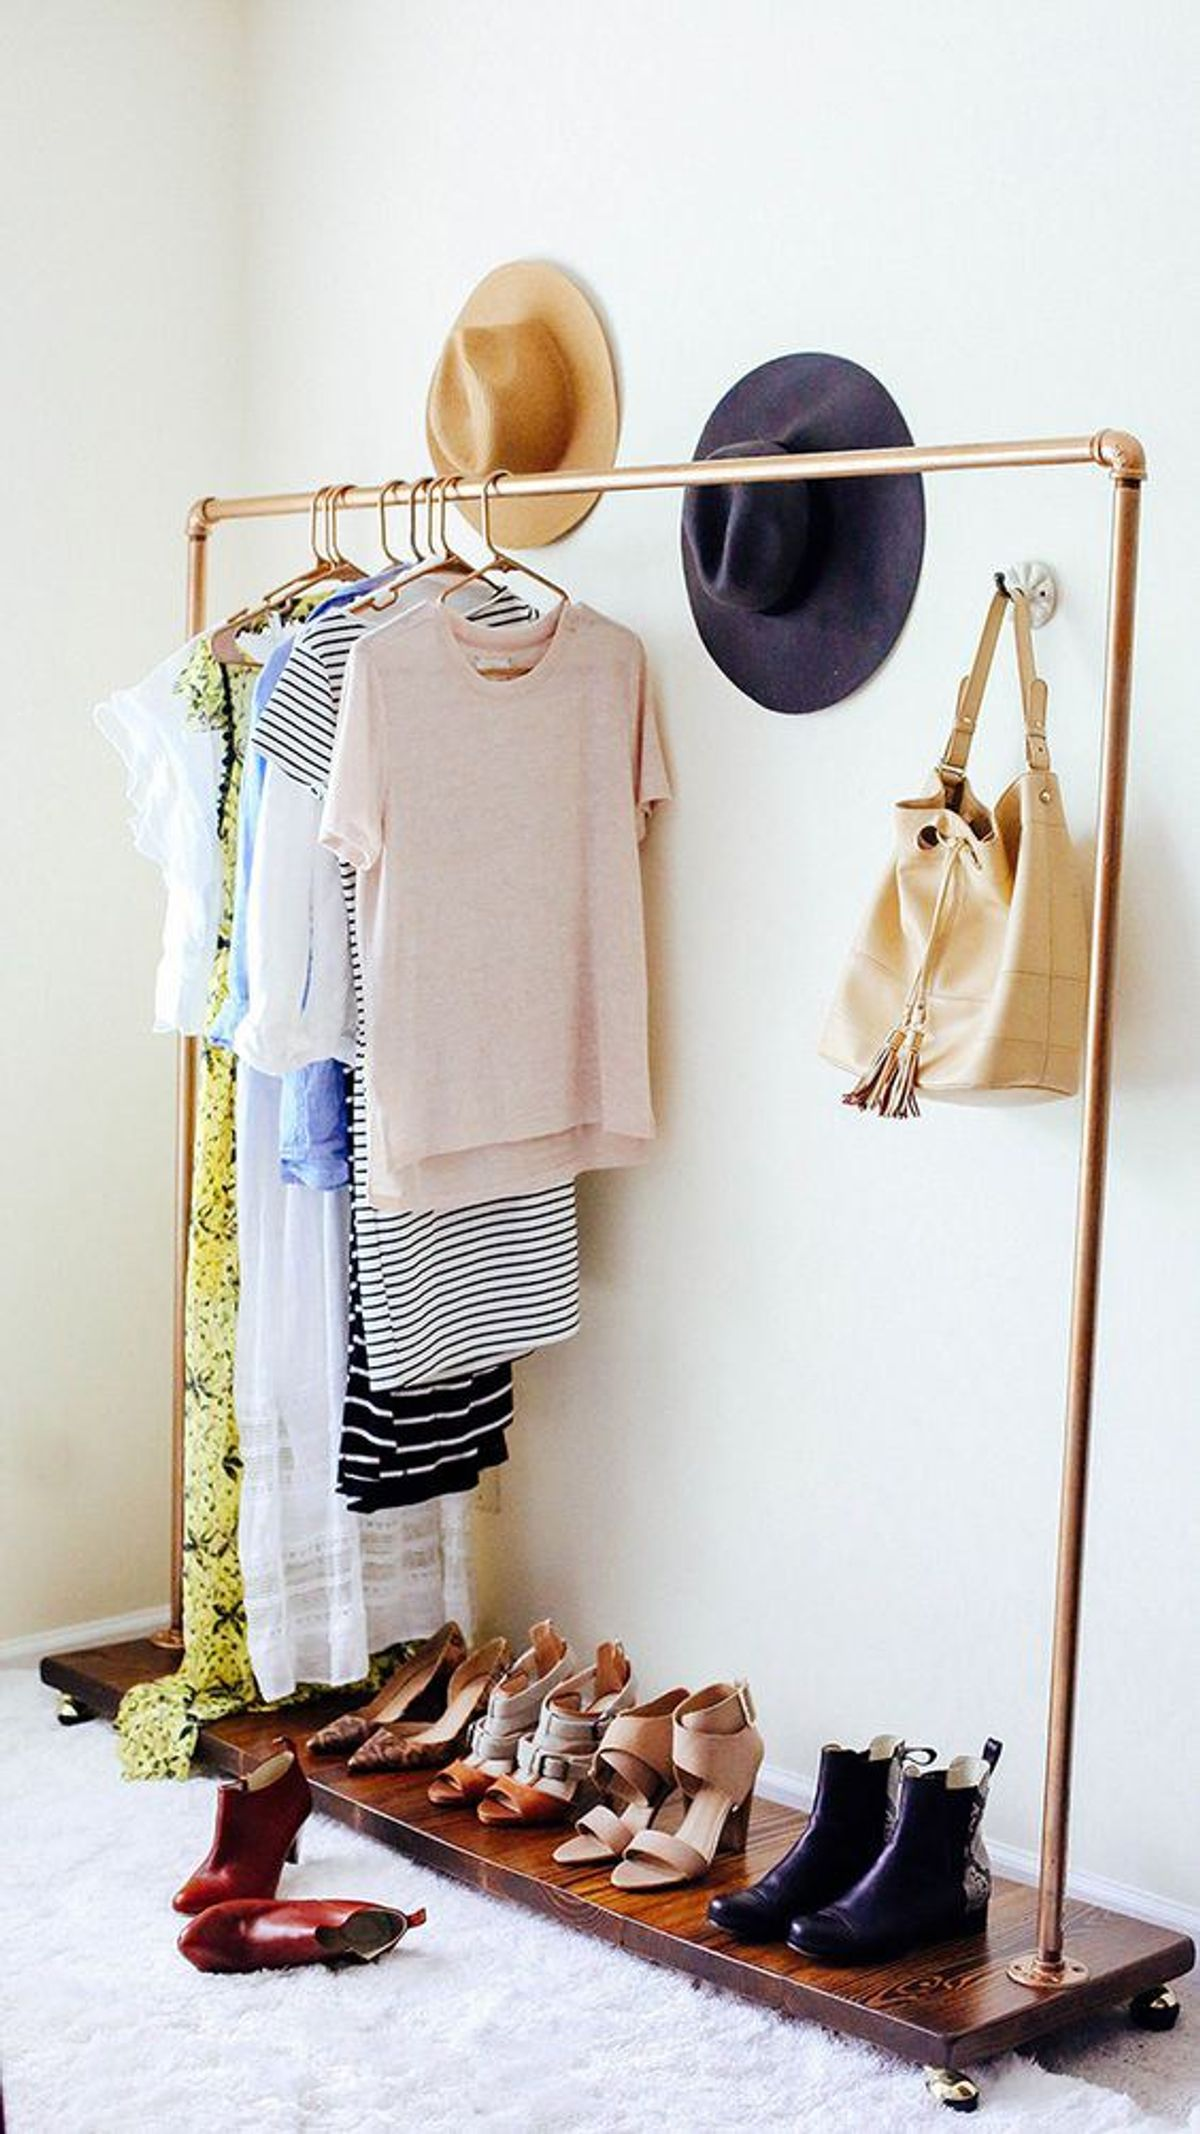 How To Shop Your Own Closet For New Summer Looks